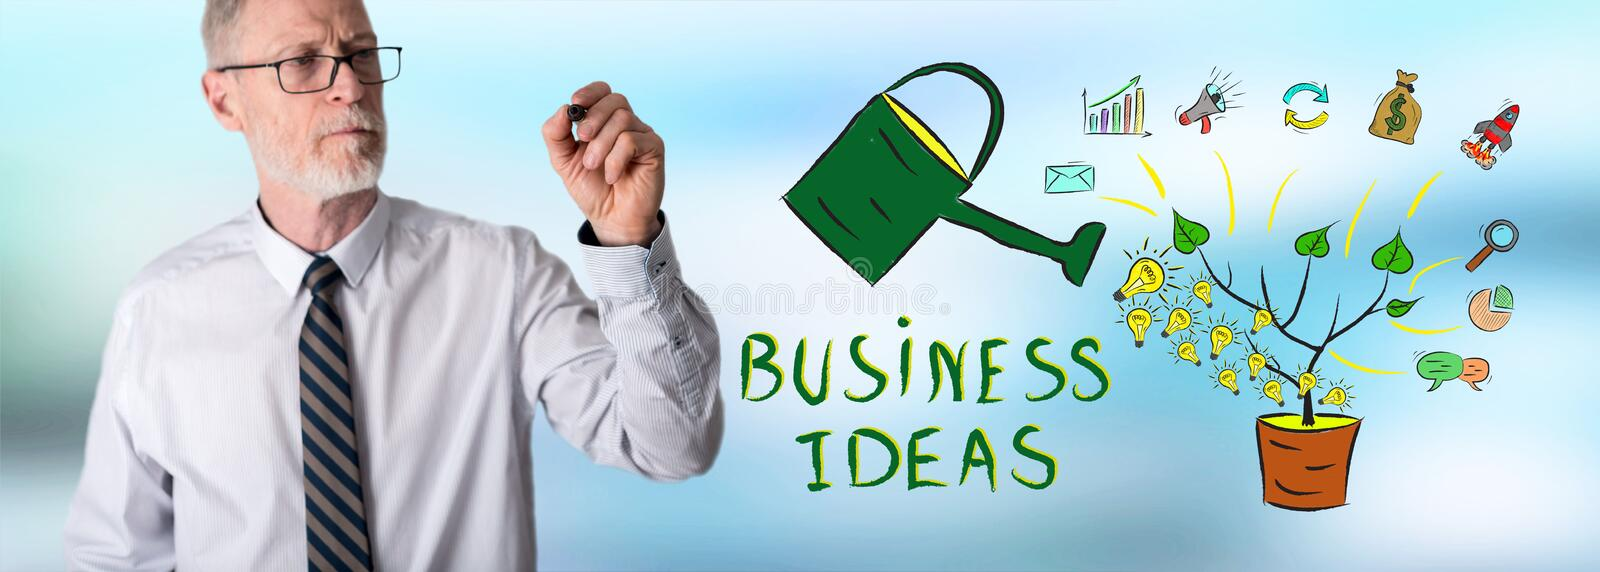 Businessman drawing business ideas concept royalty free stock photo